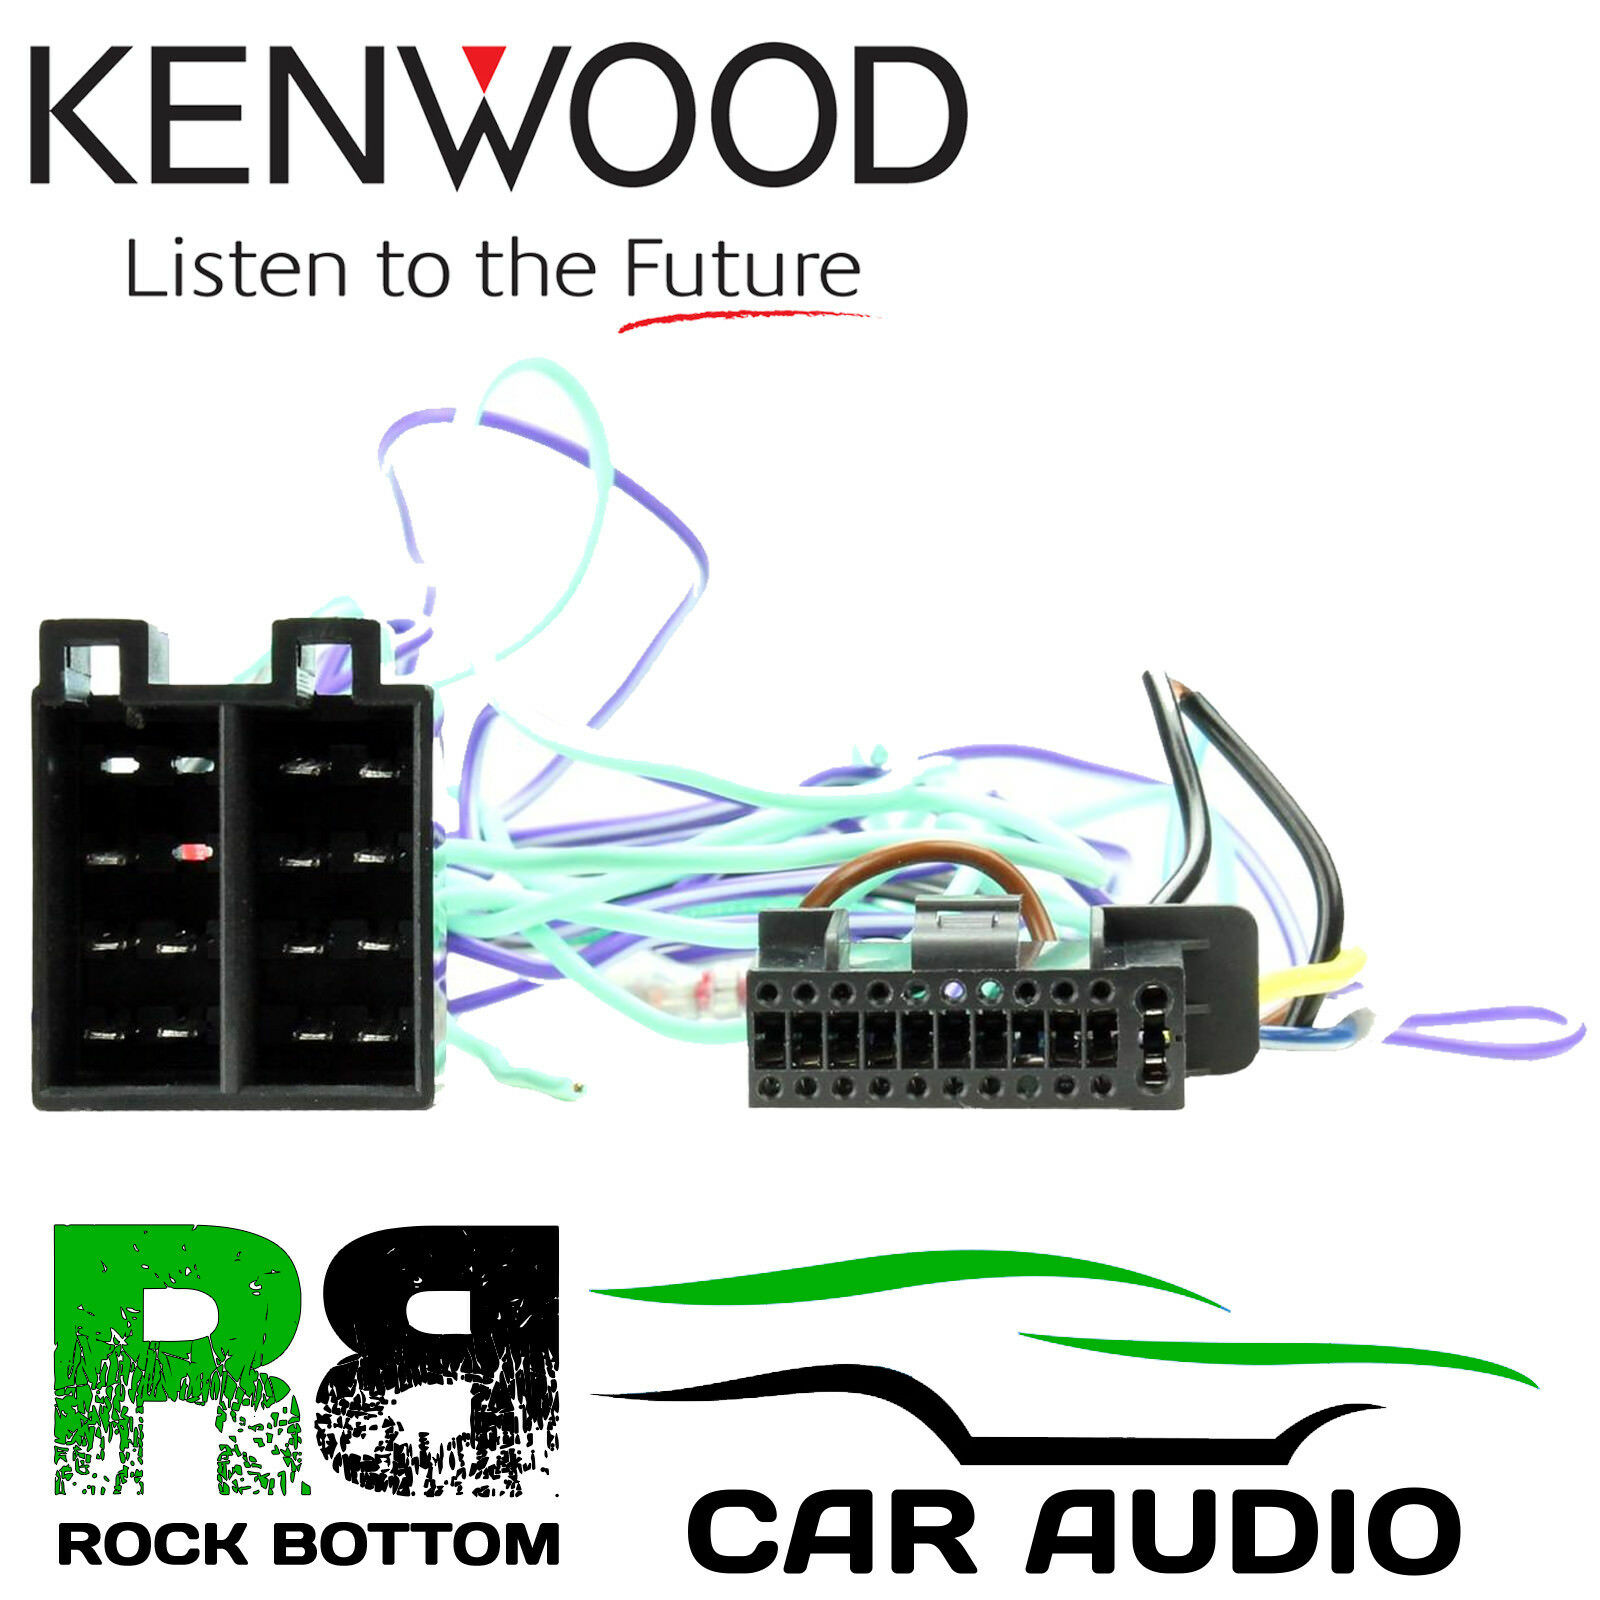 Car Audio Speaker Wiring Kenwood Dmx 7017dabs Radio Stereo Harness Loom Iso Lead Adaptor 1 Of 1free Shipping See More